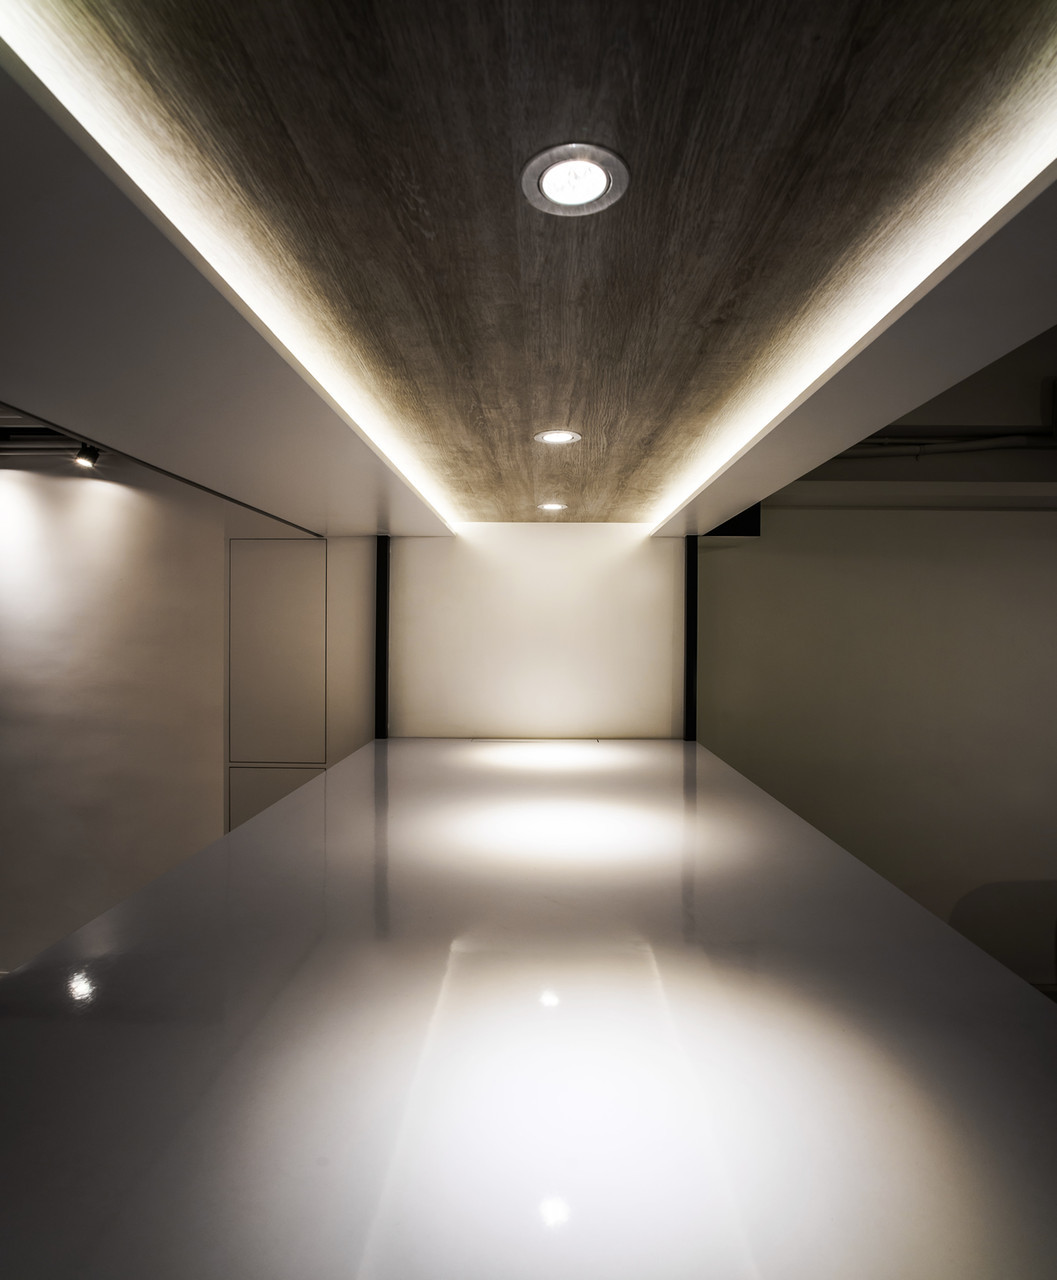 Design studio aravia design limited archinect for Hk architecture firm